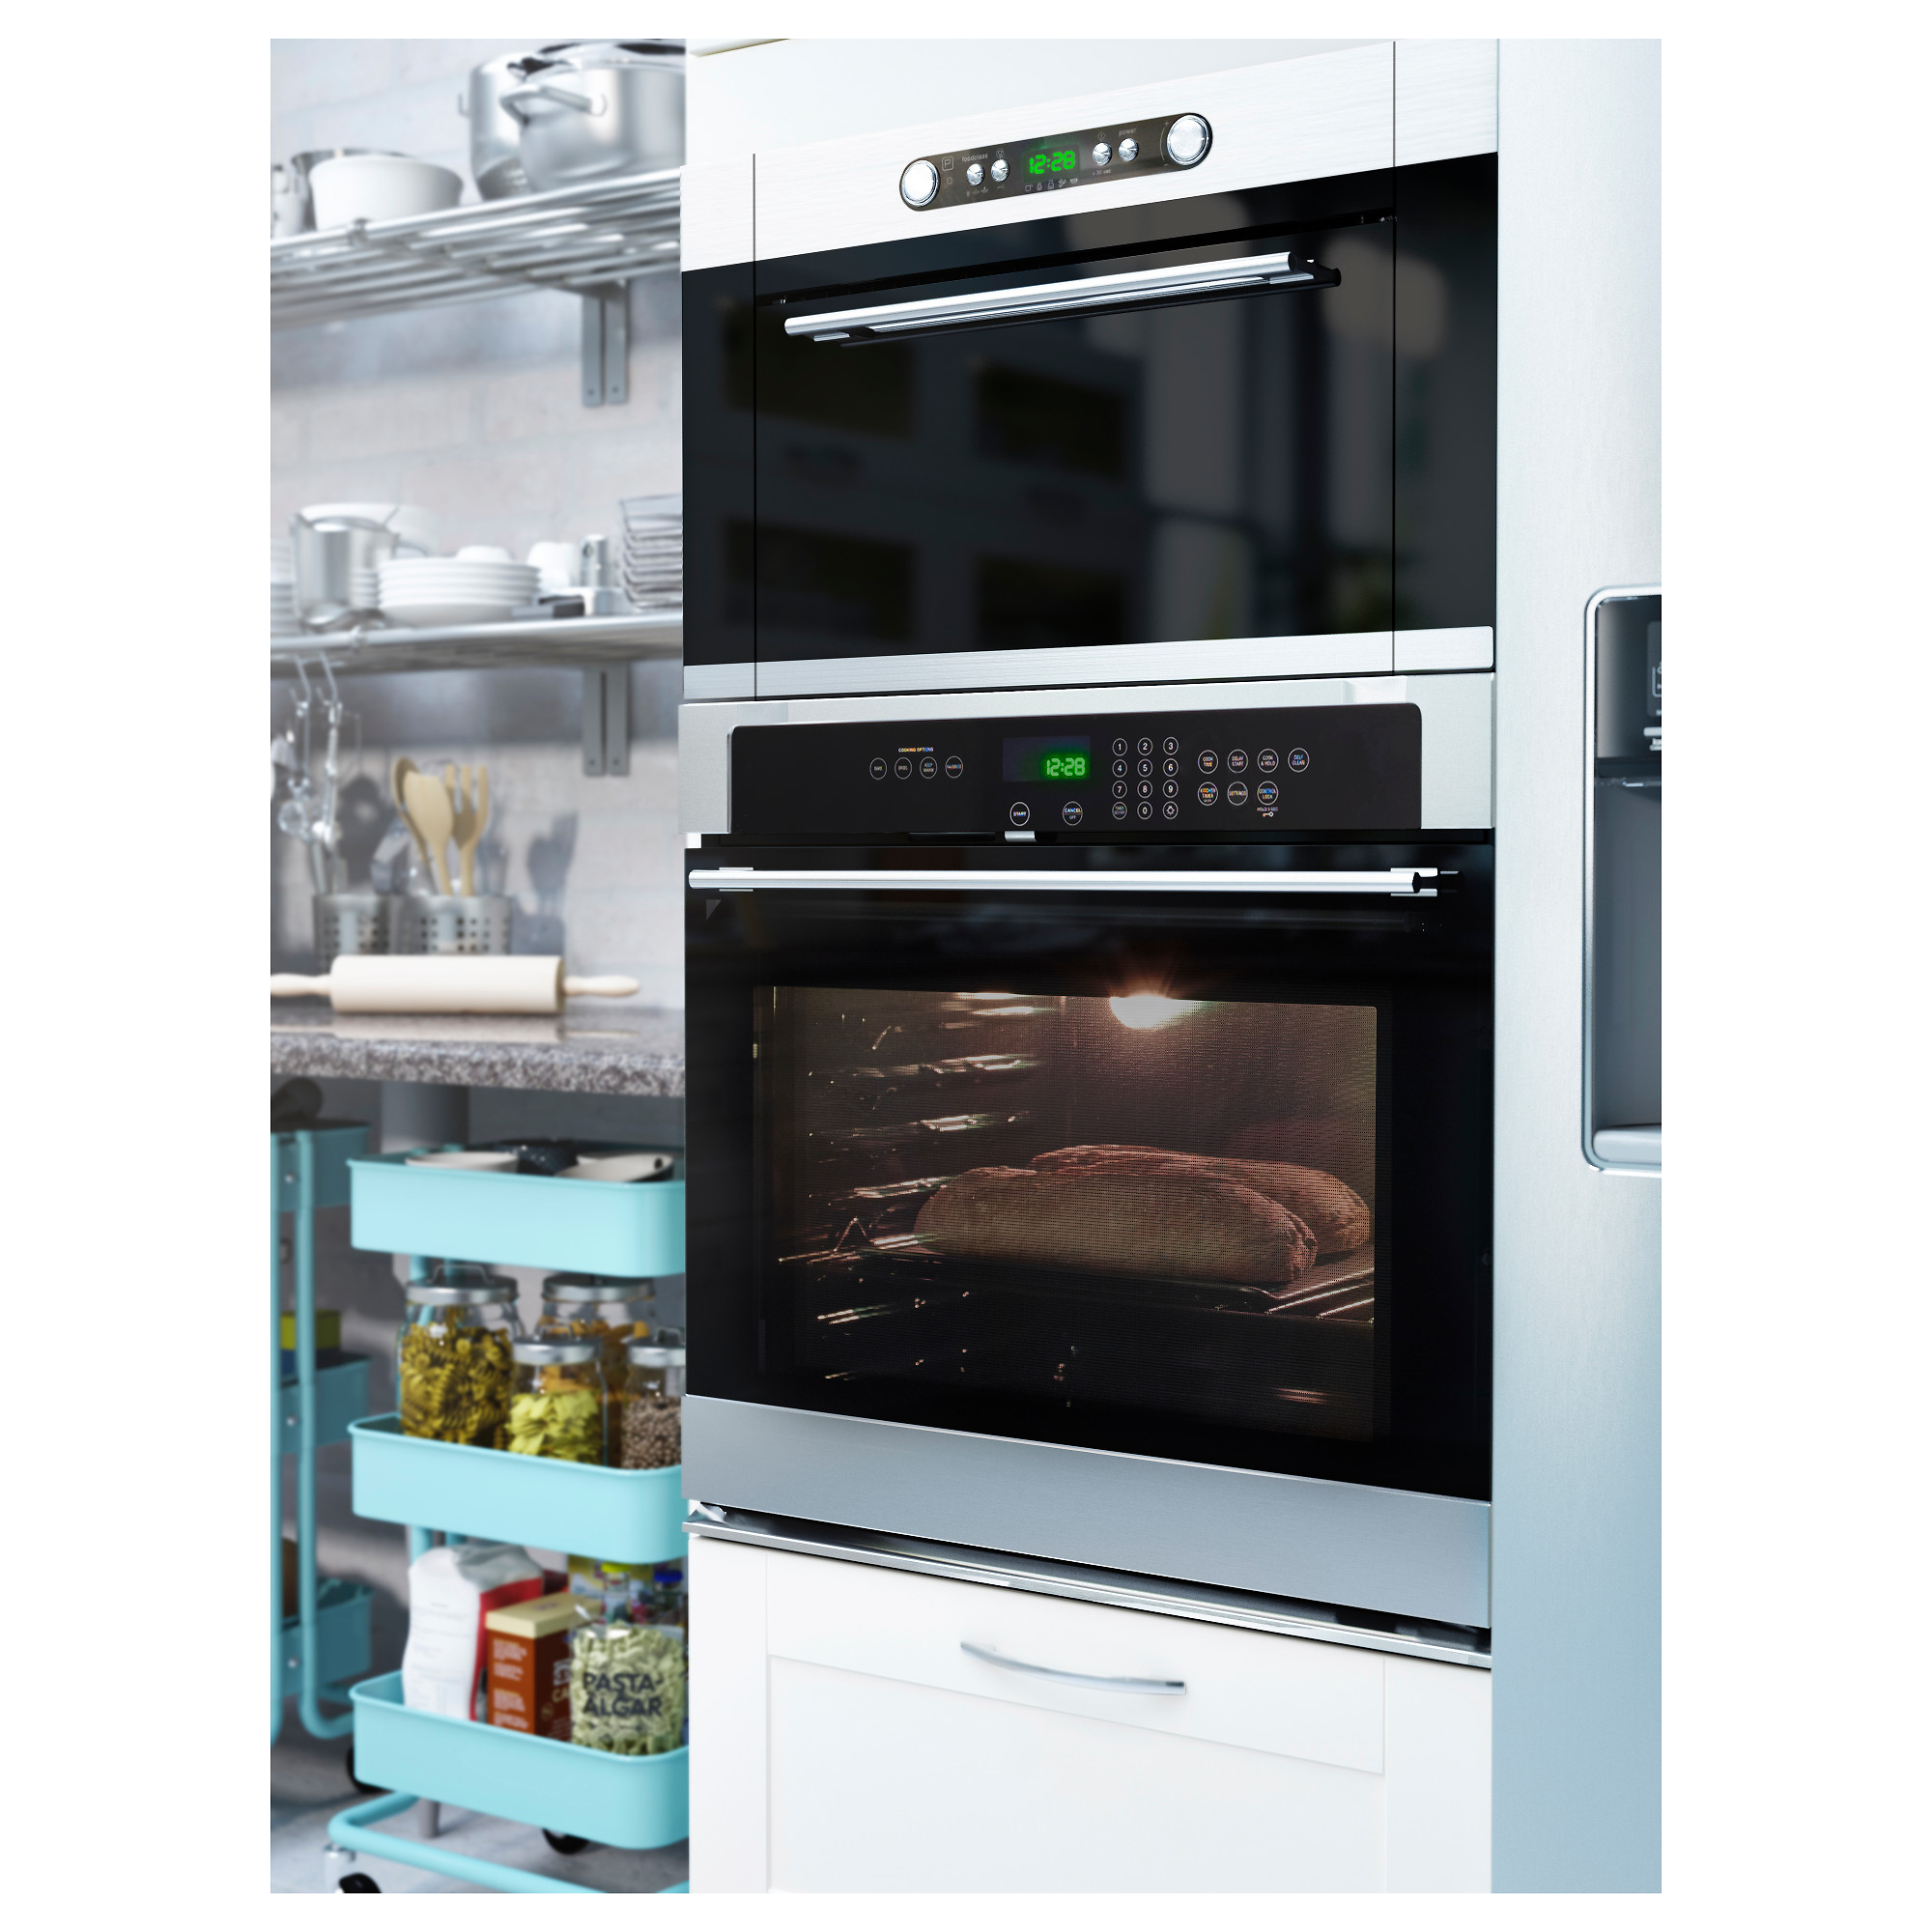 Do You Use Oven Cleaner On A Self Cleaning Oven -